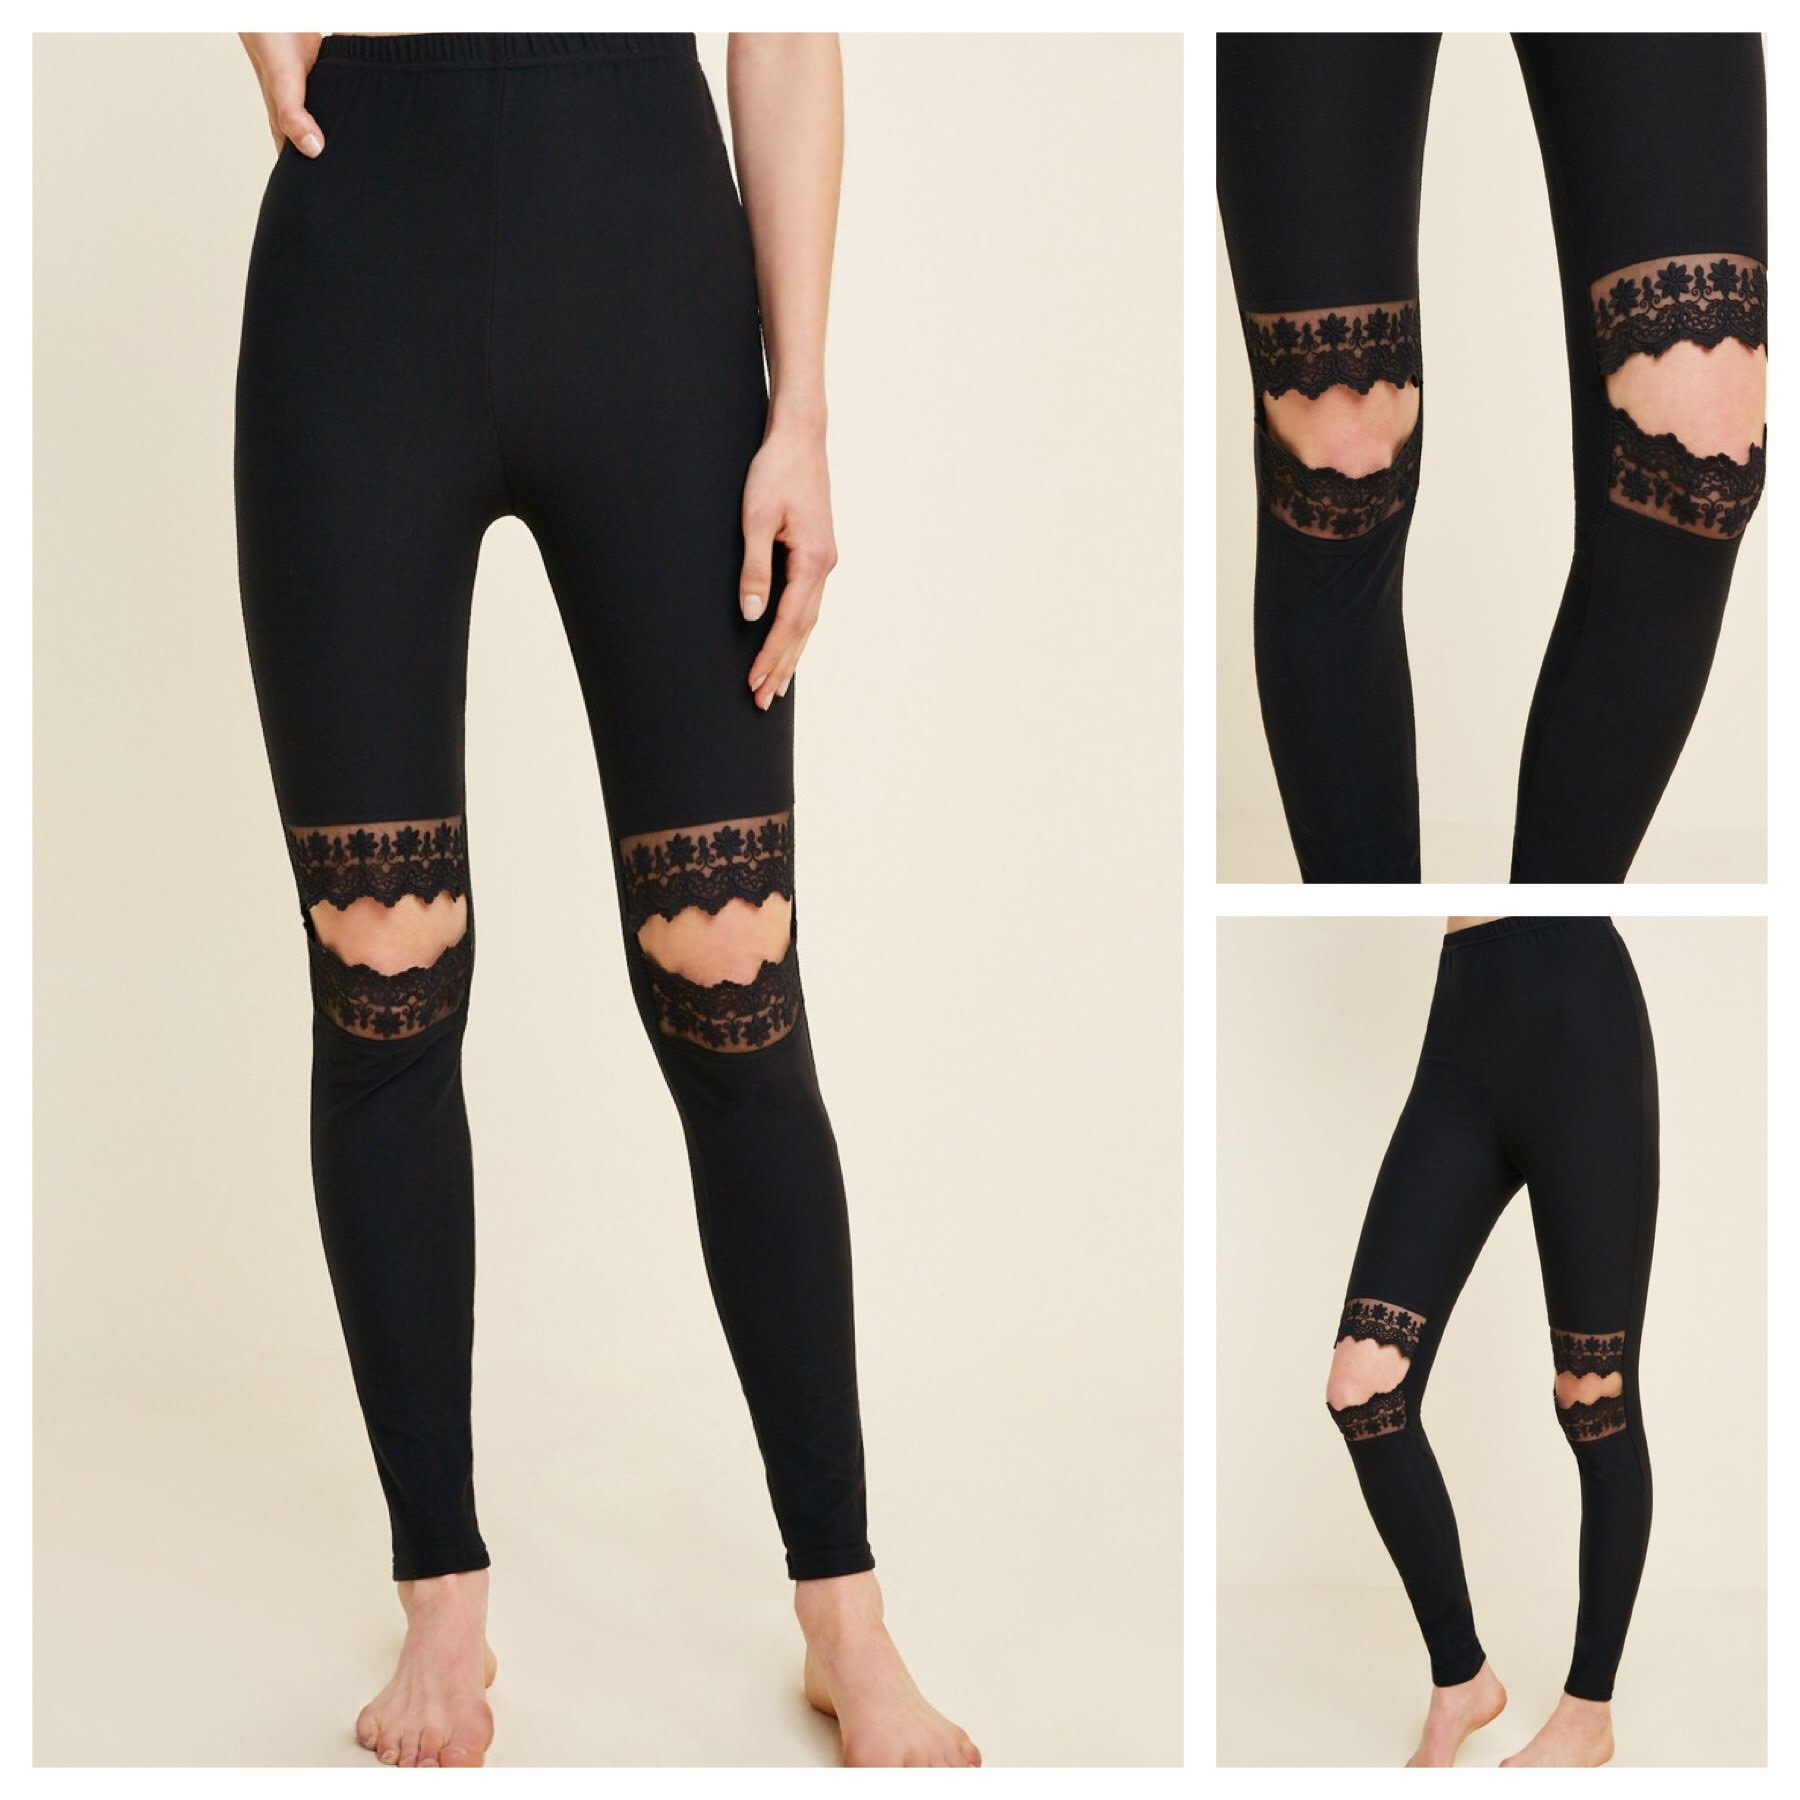 Laser Cut and Lace Leggings